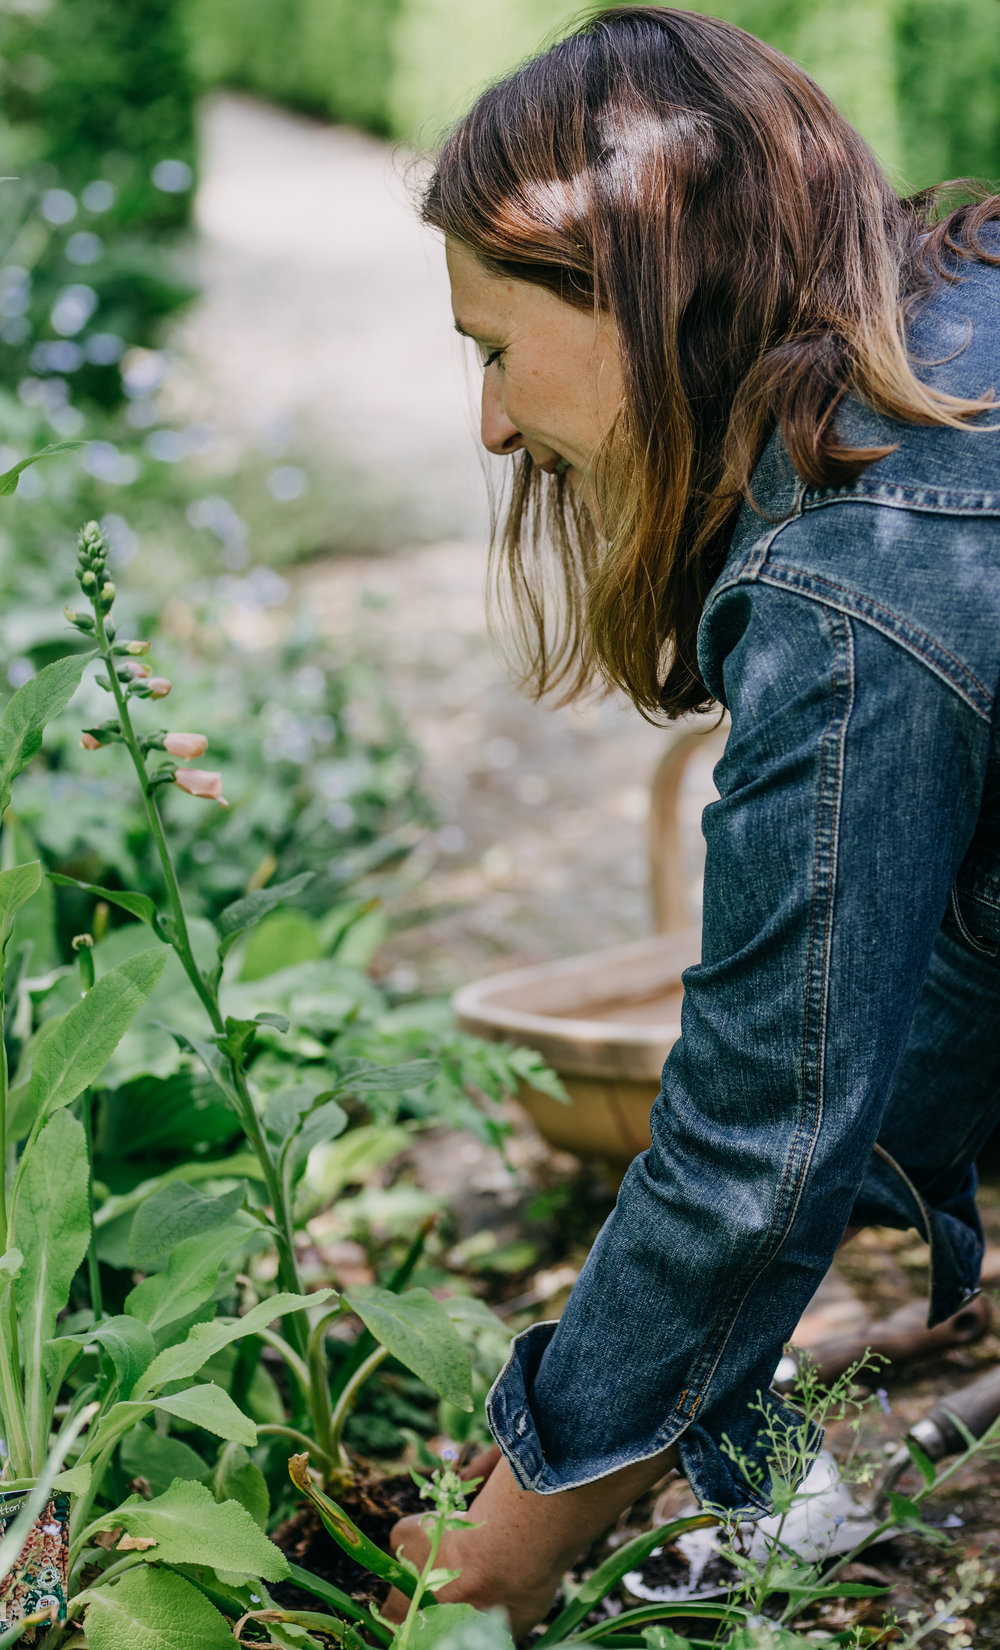 Sarah Layton uses horticultural therapy & garden for well being